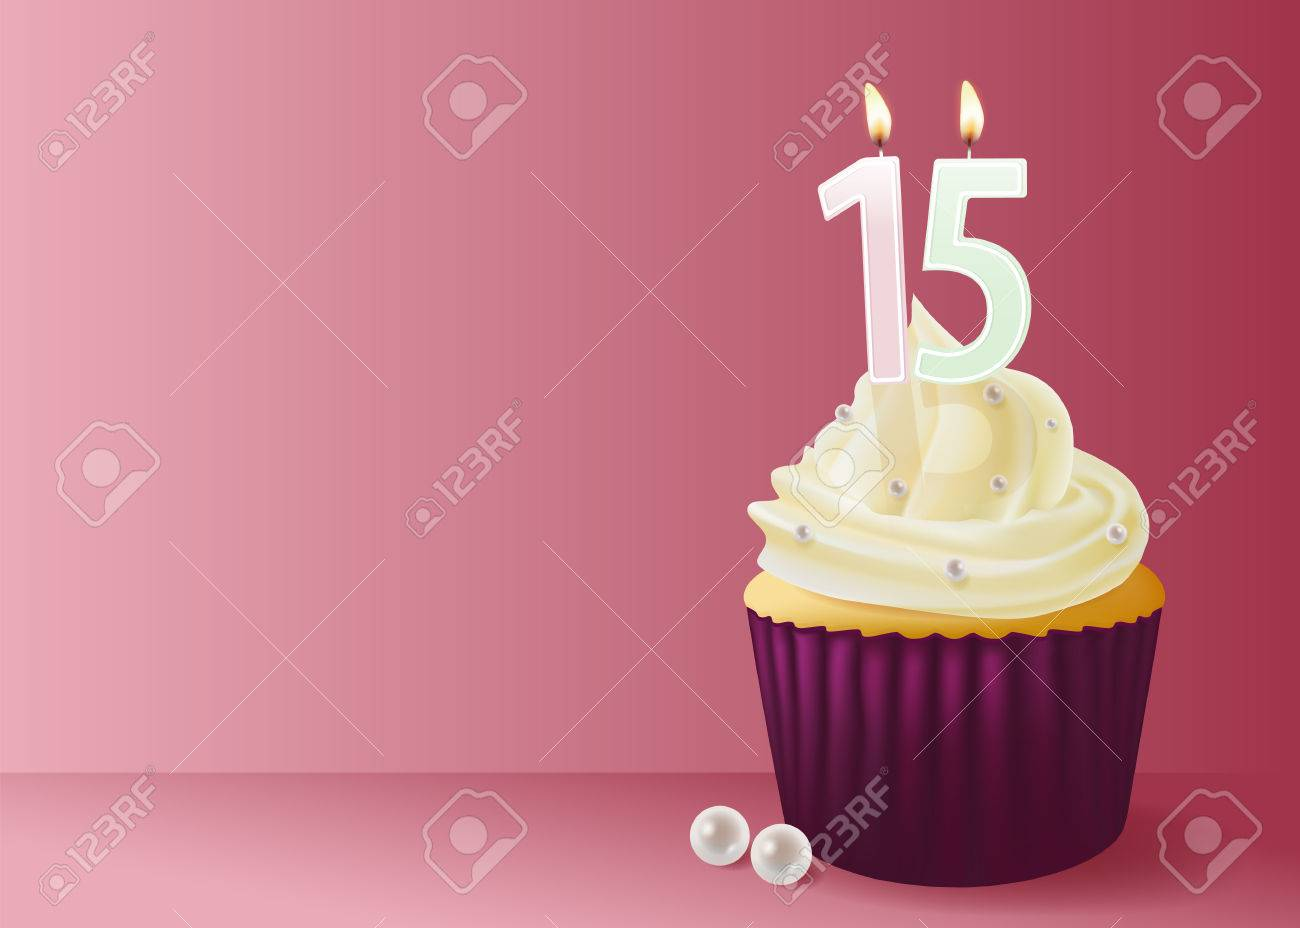 Illustration Of Cup Cake With Birthday Candle 15 Stock Vector